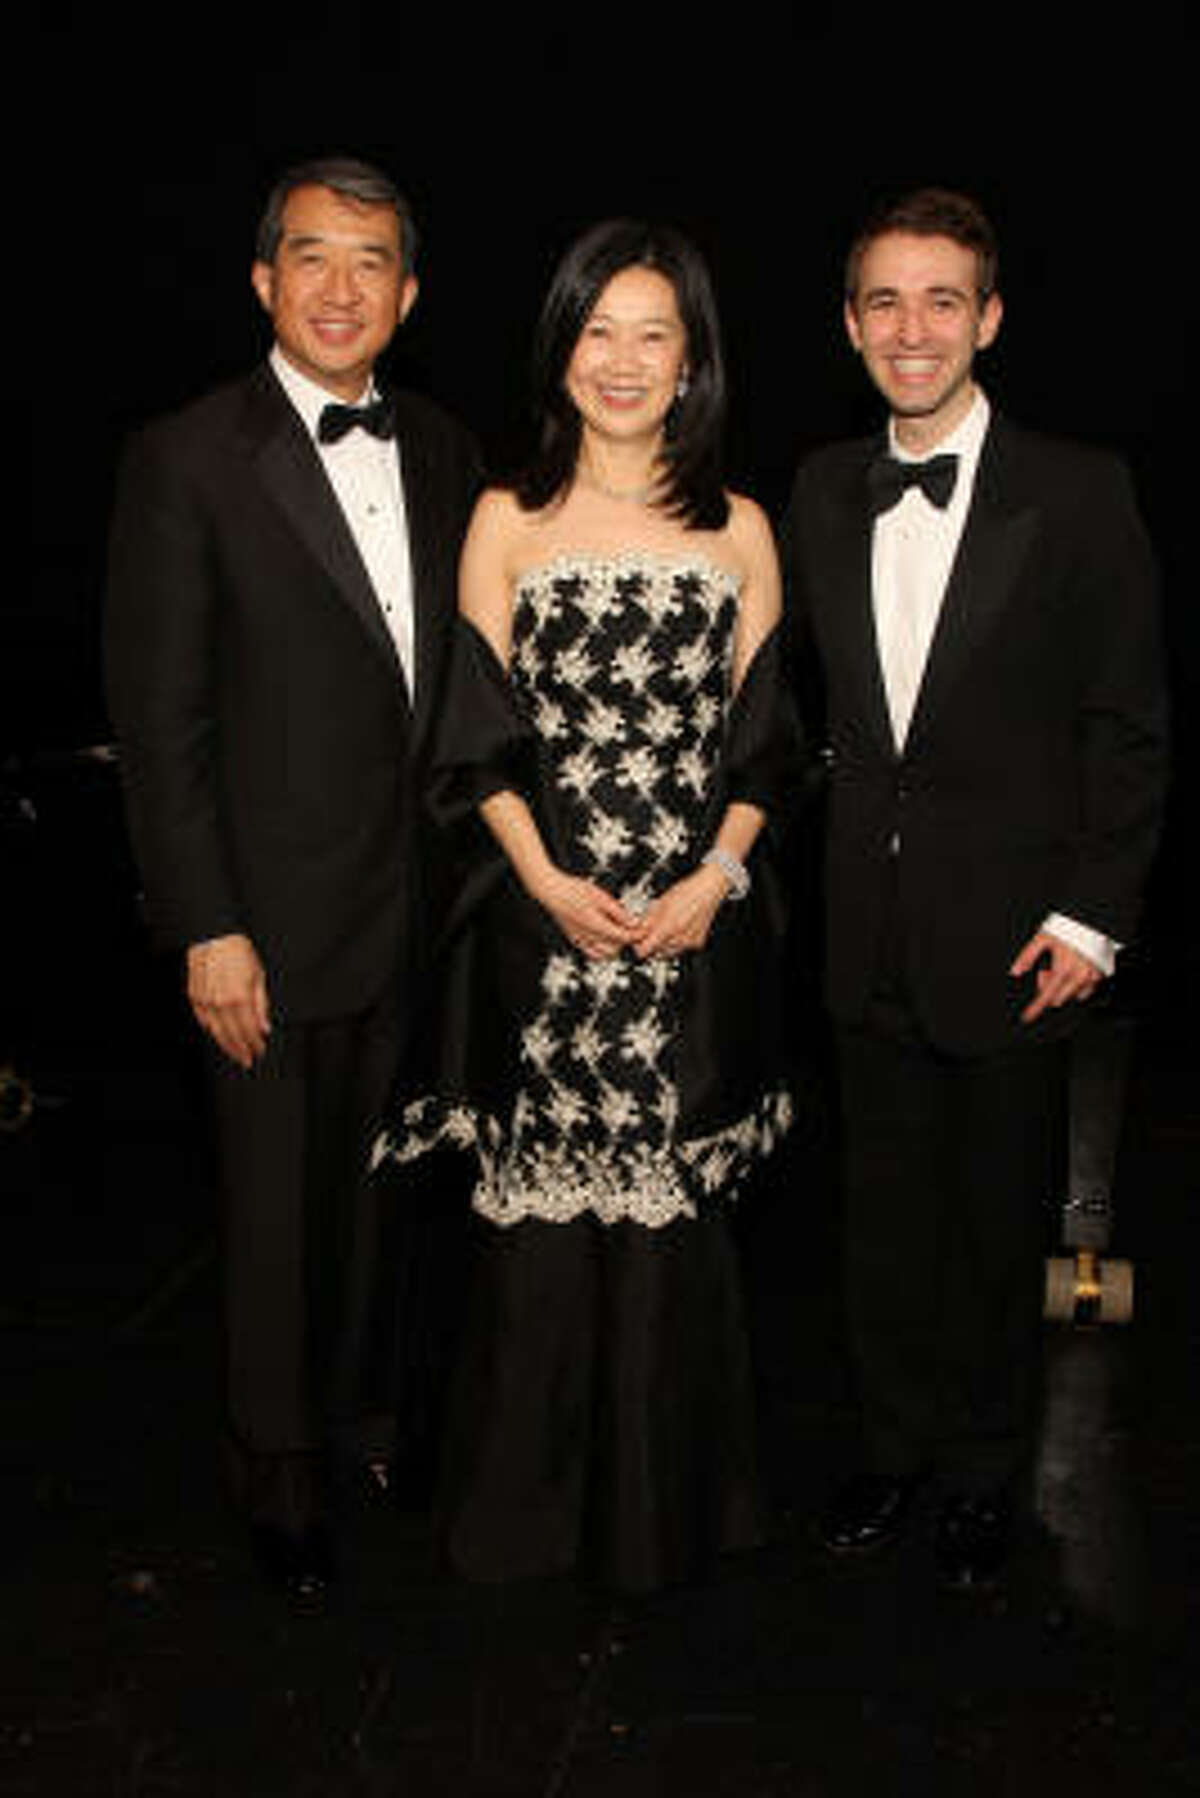 Chairs Albert and Anne Chao with countertenor Anthony Roth Costanzo, the winner of Concert of Arias, a recruiting and fundraising vehicle for the Houston Grand Opera Studio.